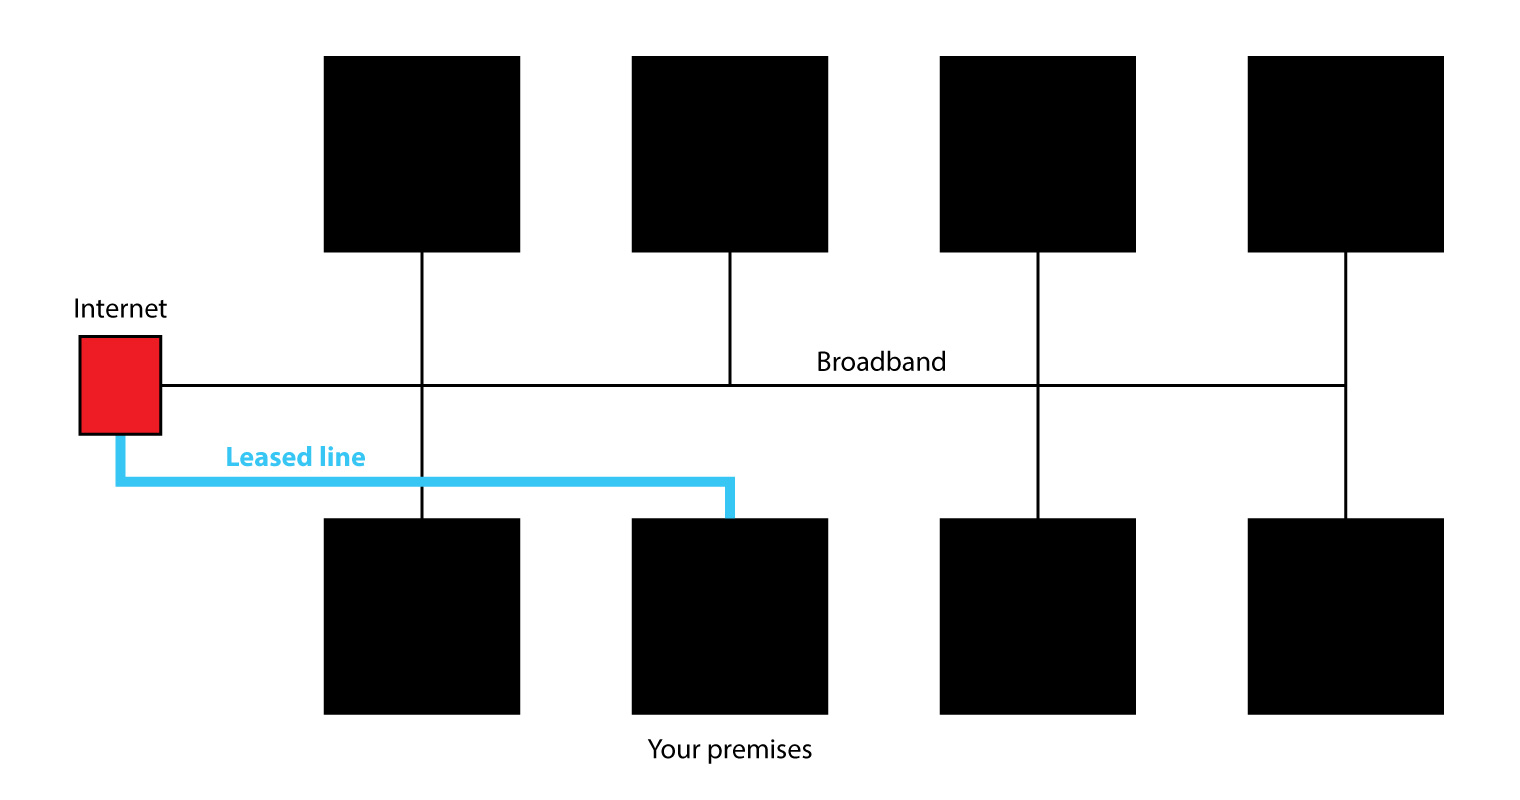 Leased lines diagram